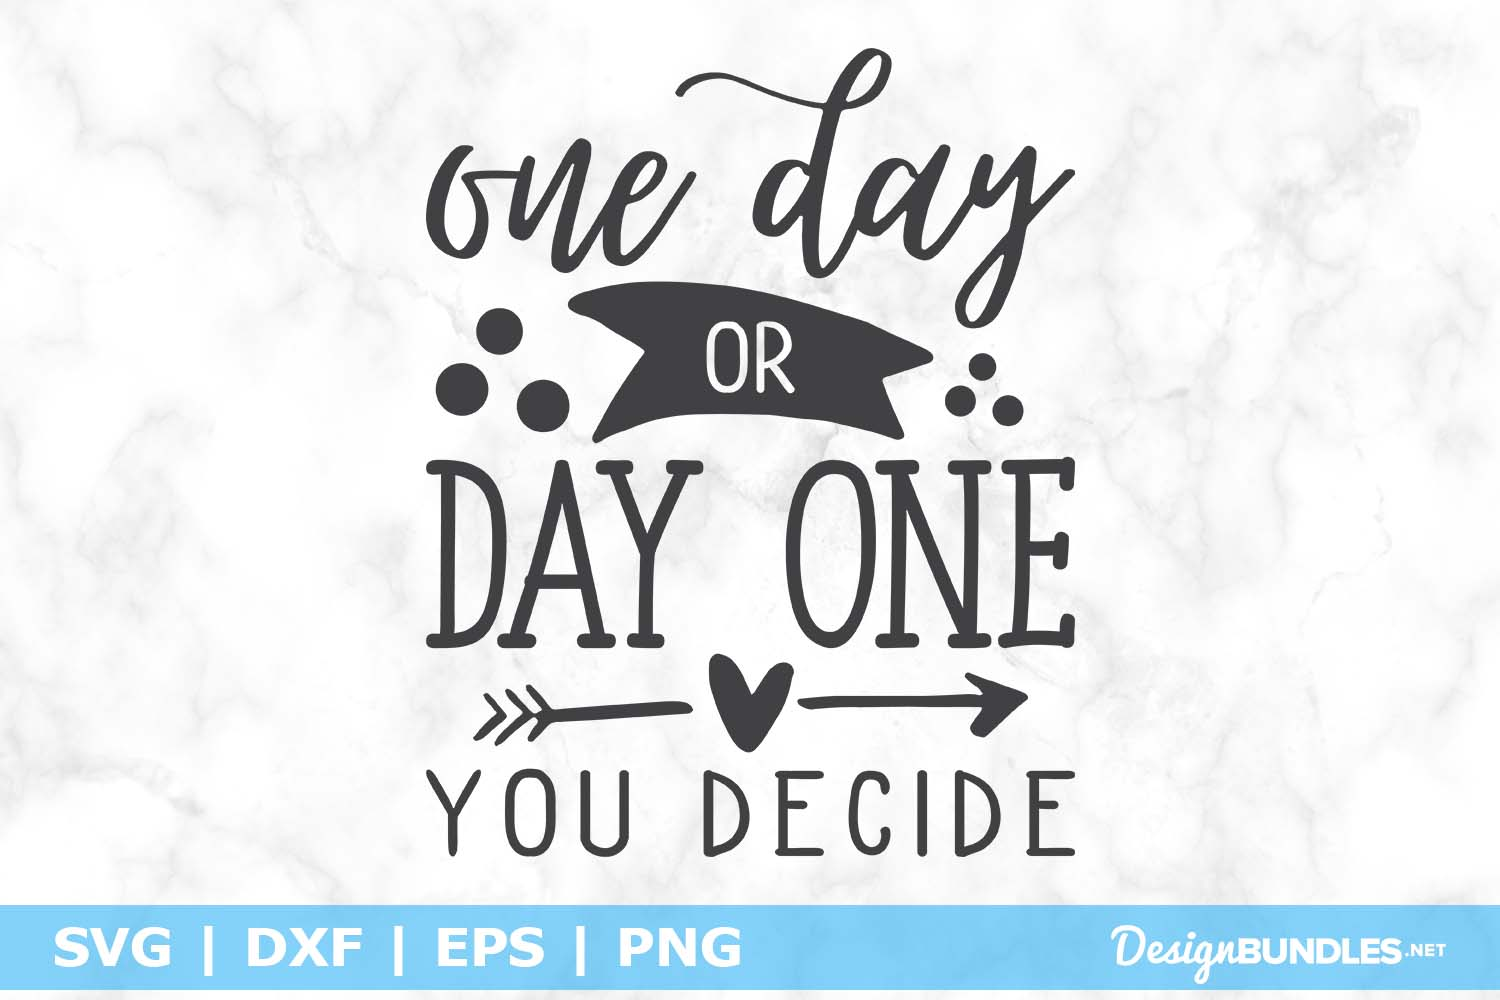 One Day Or Day One You Decide SVG File example image 1